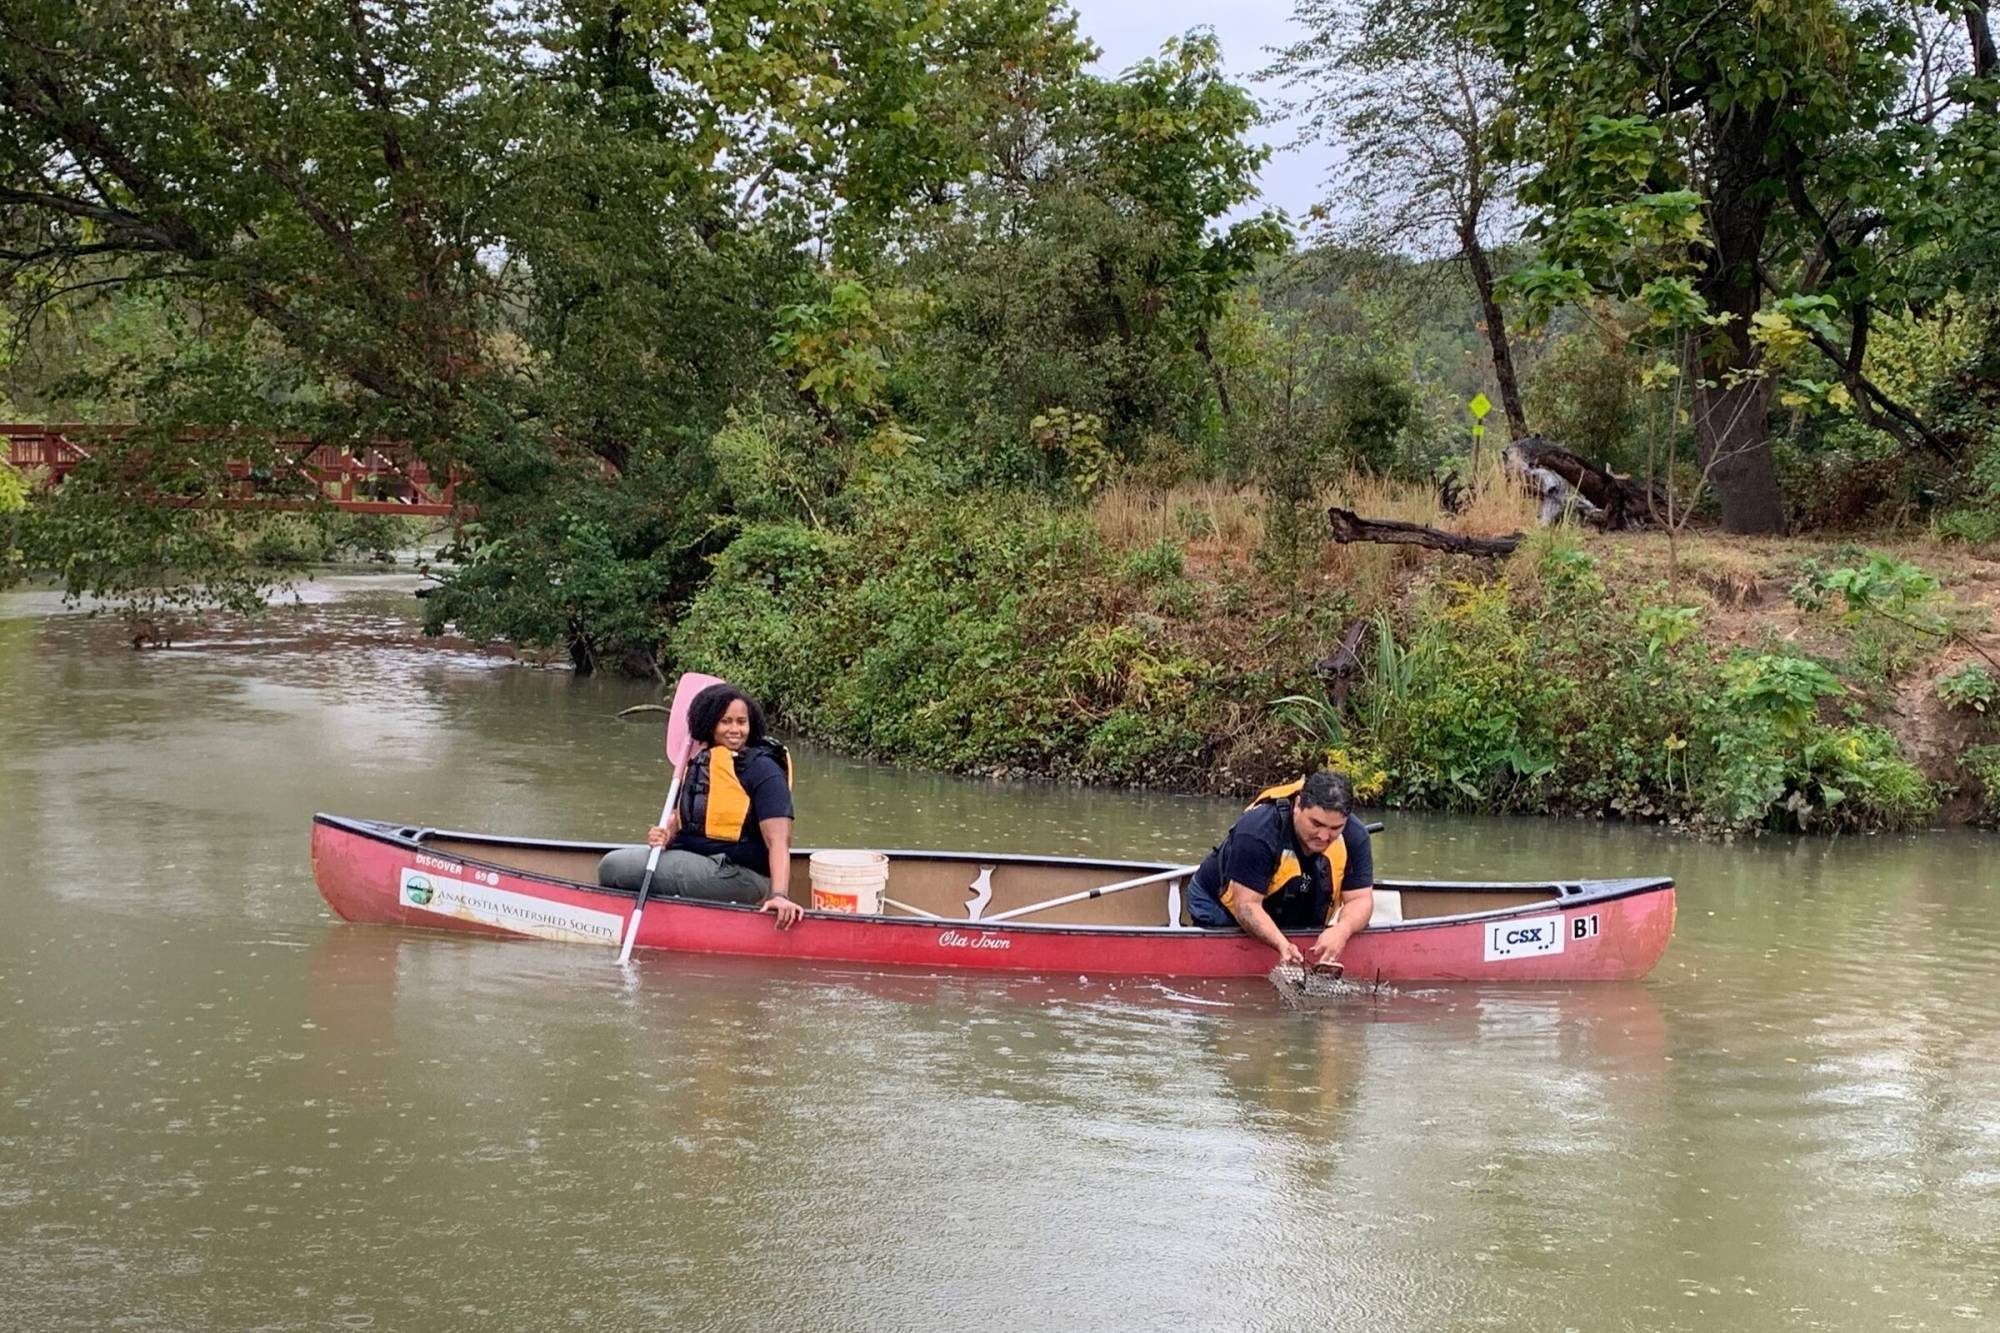 Jorge and Reyna release mussels near Kenilworth Marsh by Kenilworth Aquatic Gardens